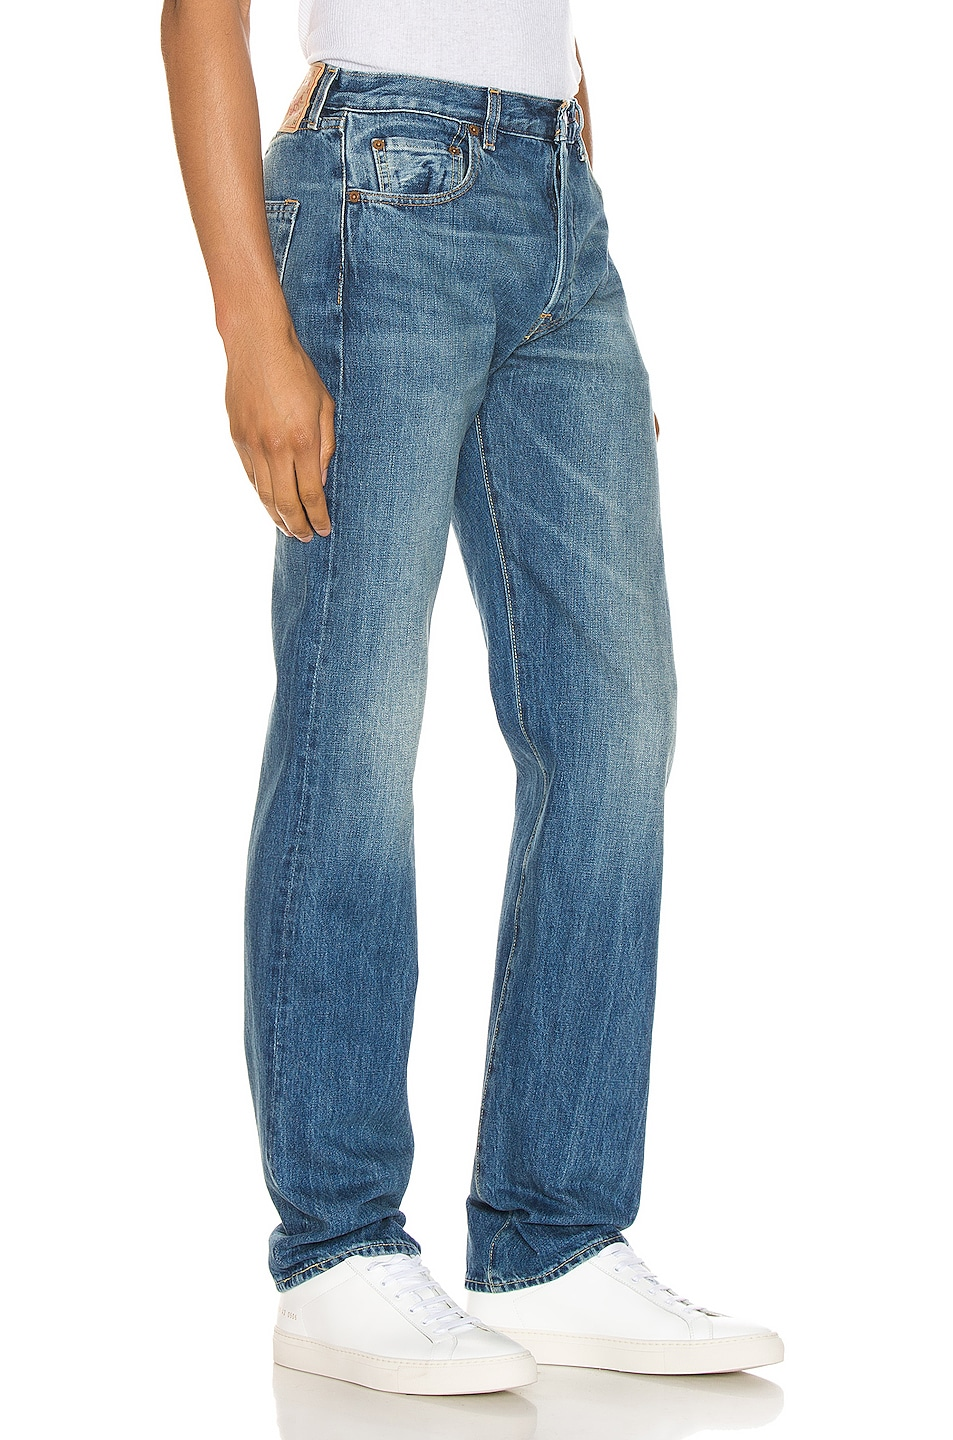 Image 2 of LEVI'S Vintage Clothing 1966 501 Jeans in Ramblin Man